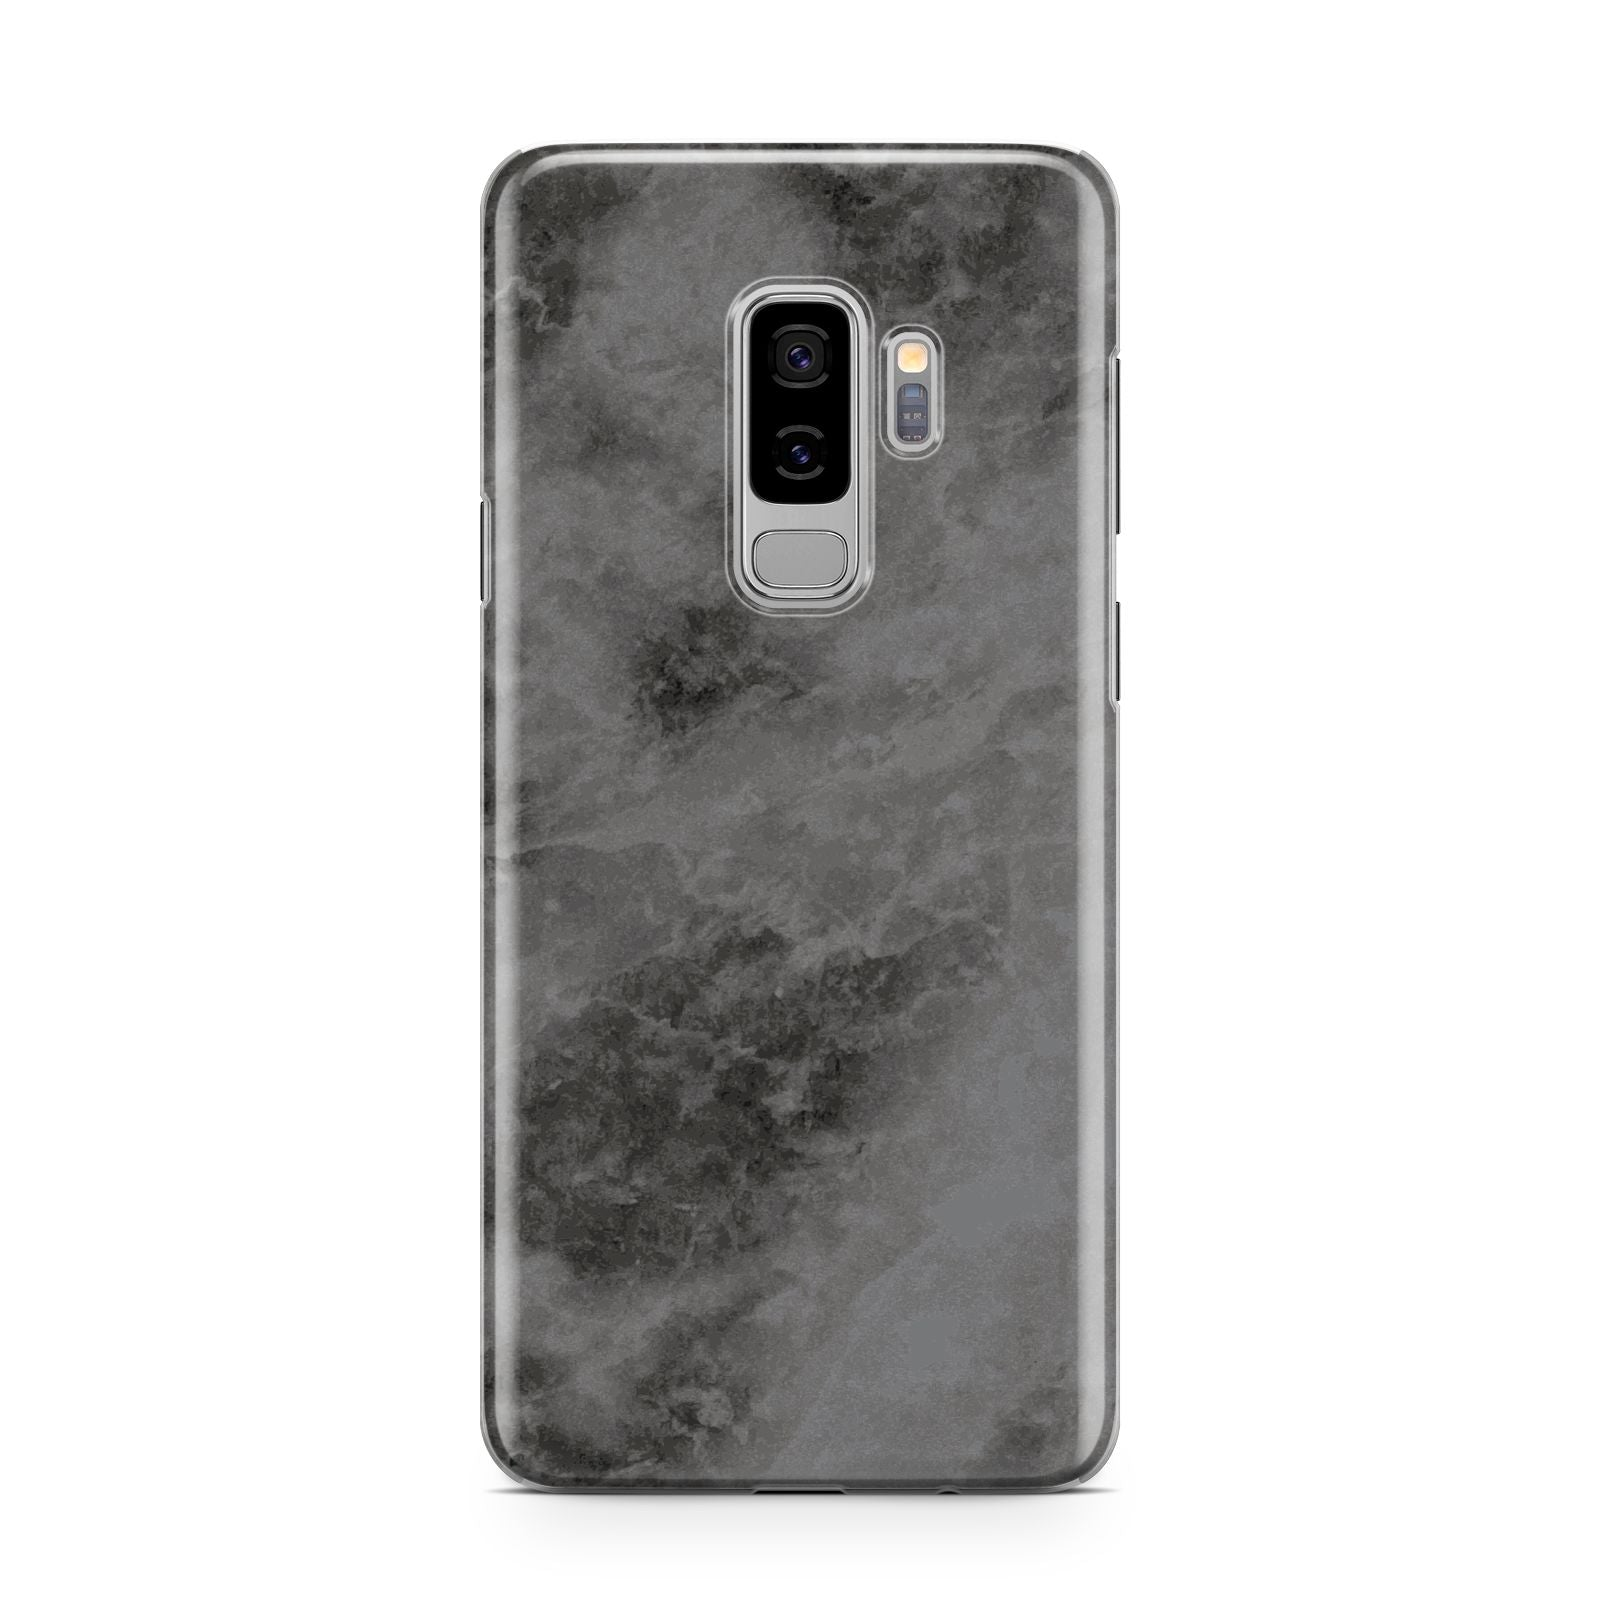 Faux Marble Grey Black Samsung Galaxy S9 Plus Case on Silver phone